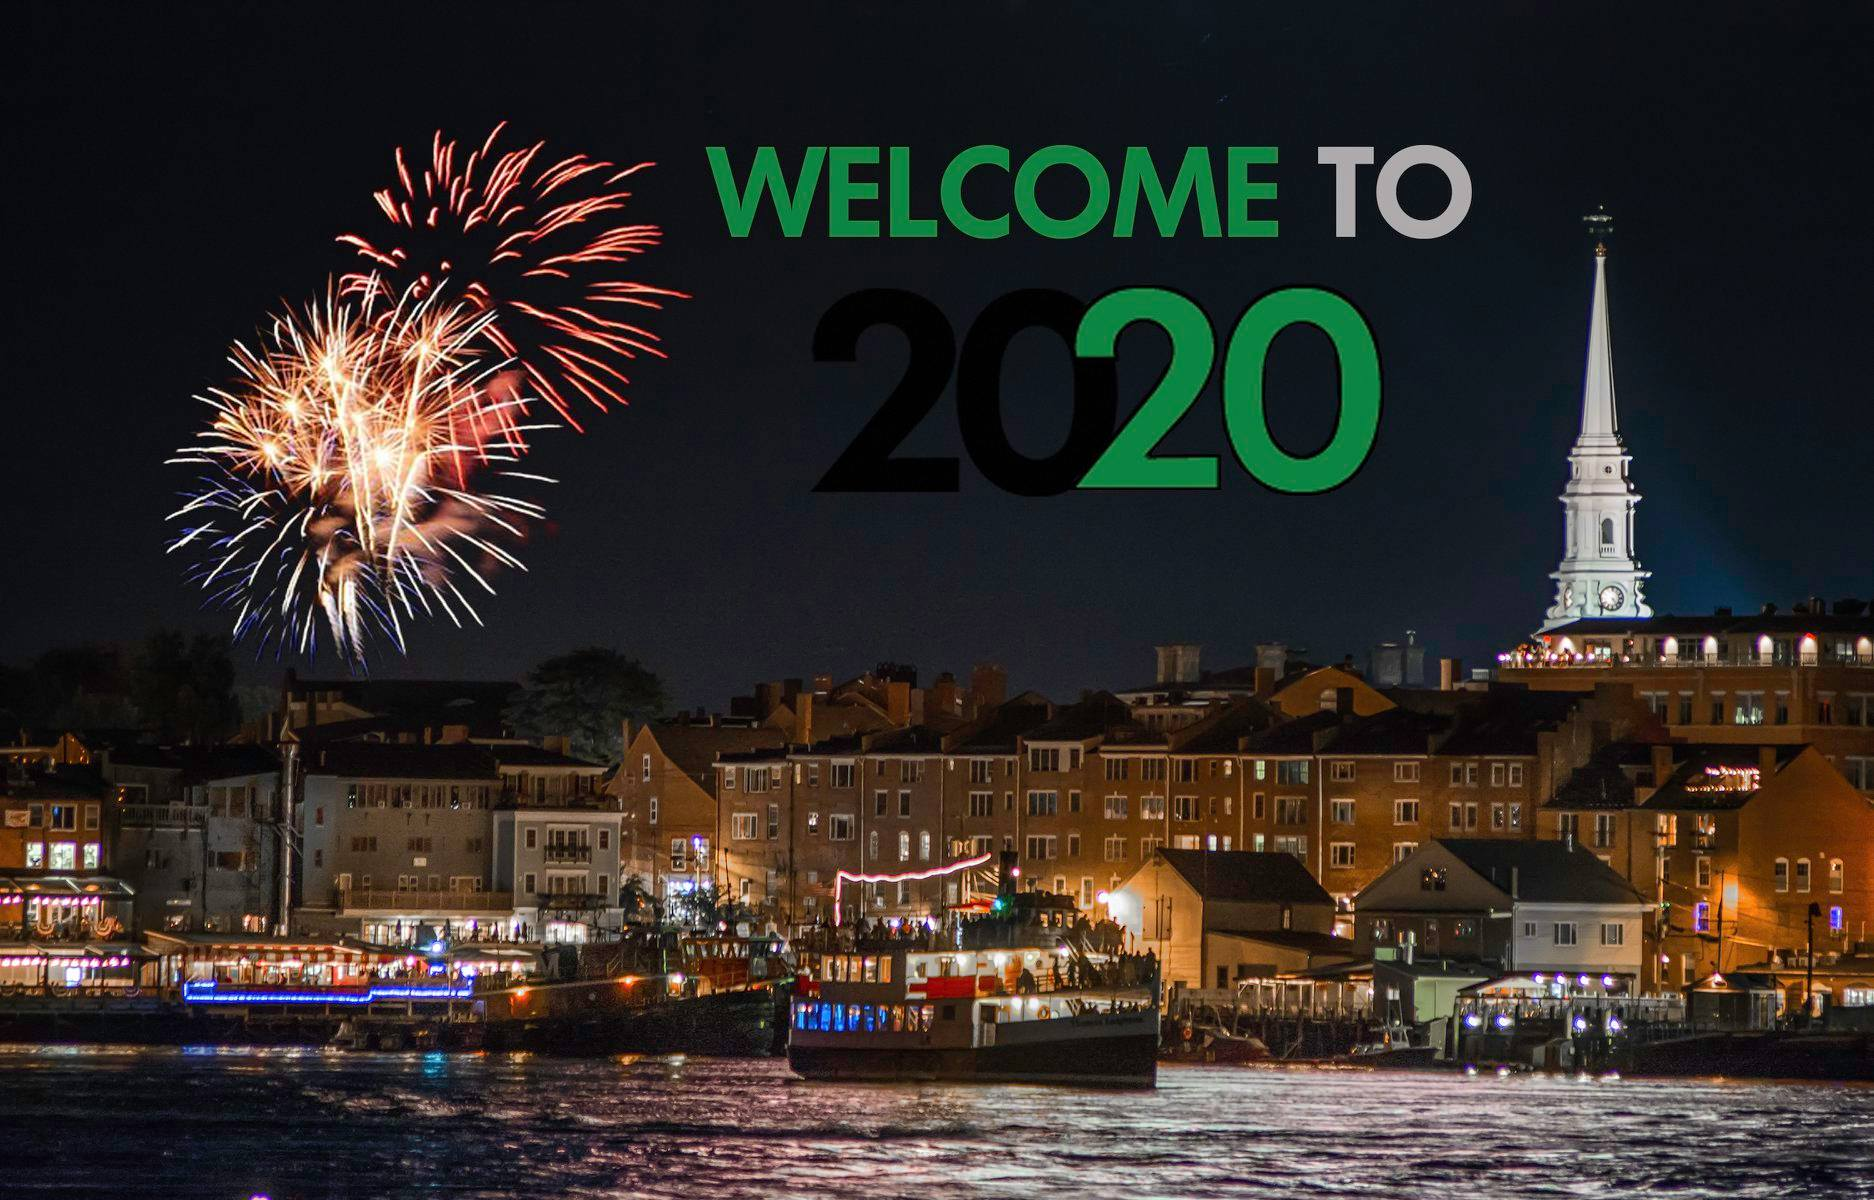 "Fireworks over the Piscataqua River and downtown Portsmouth, NH. Over the city scape, between the fireworks right of frame and the North Church steeple are the words ""Welcome to 2020"" in classic 2020 Vision Quest styling."